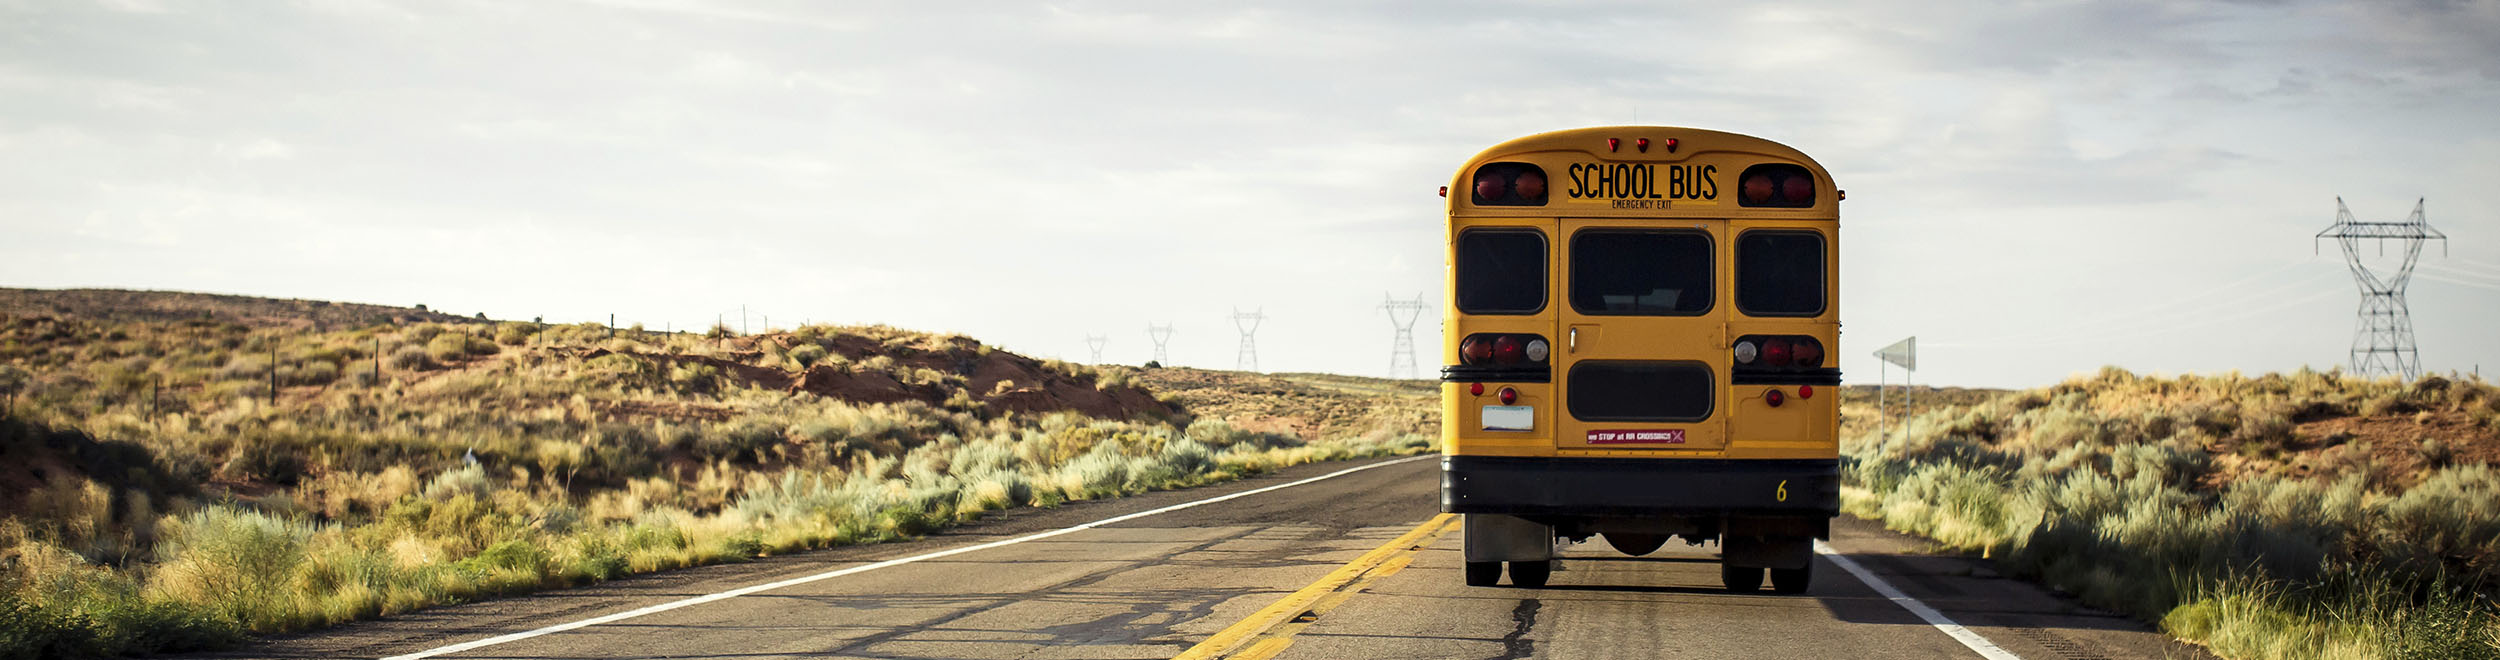 School Bus Routing Software Internet Add-on